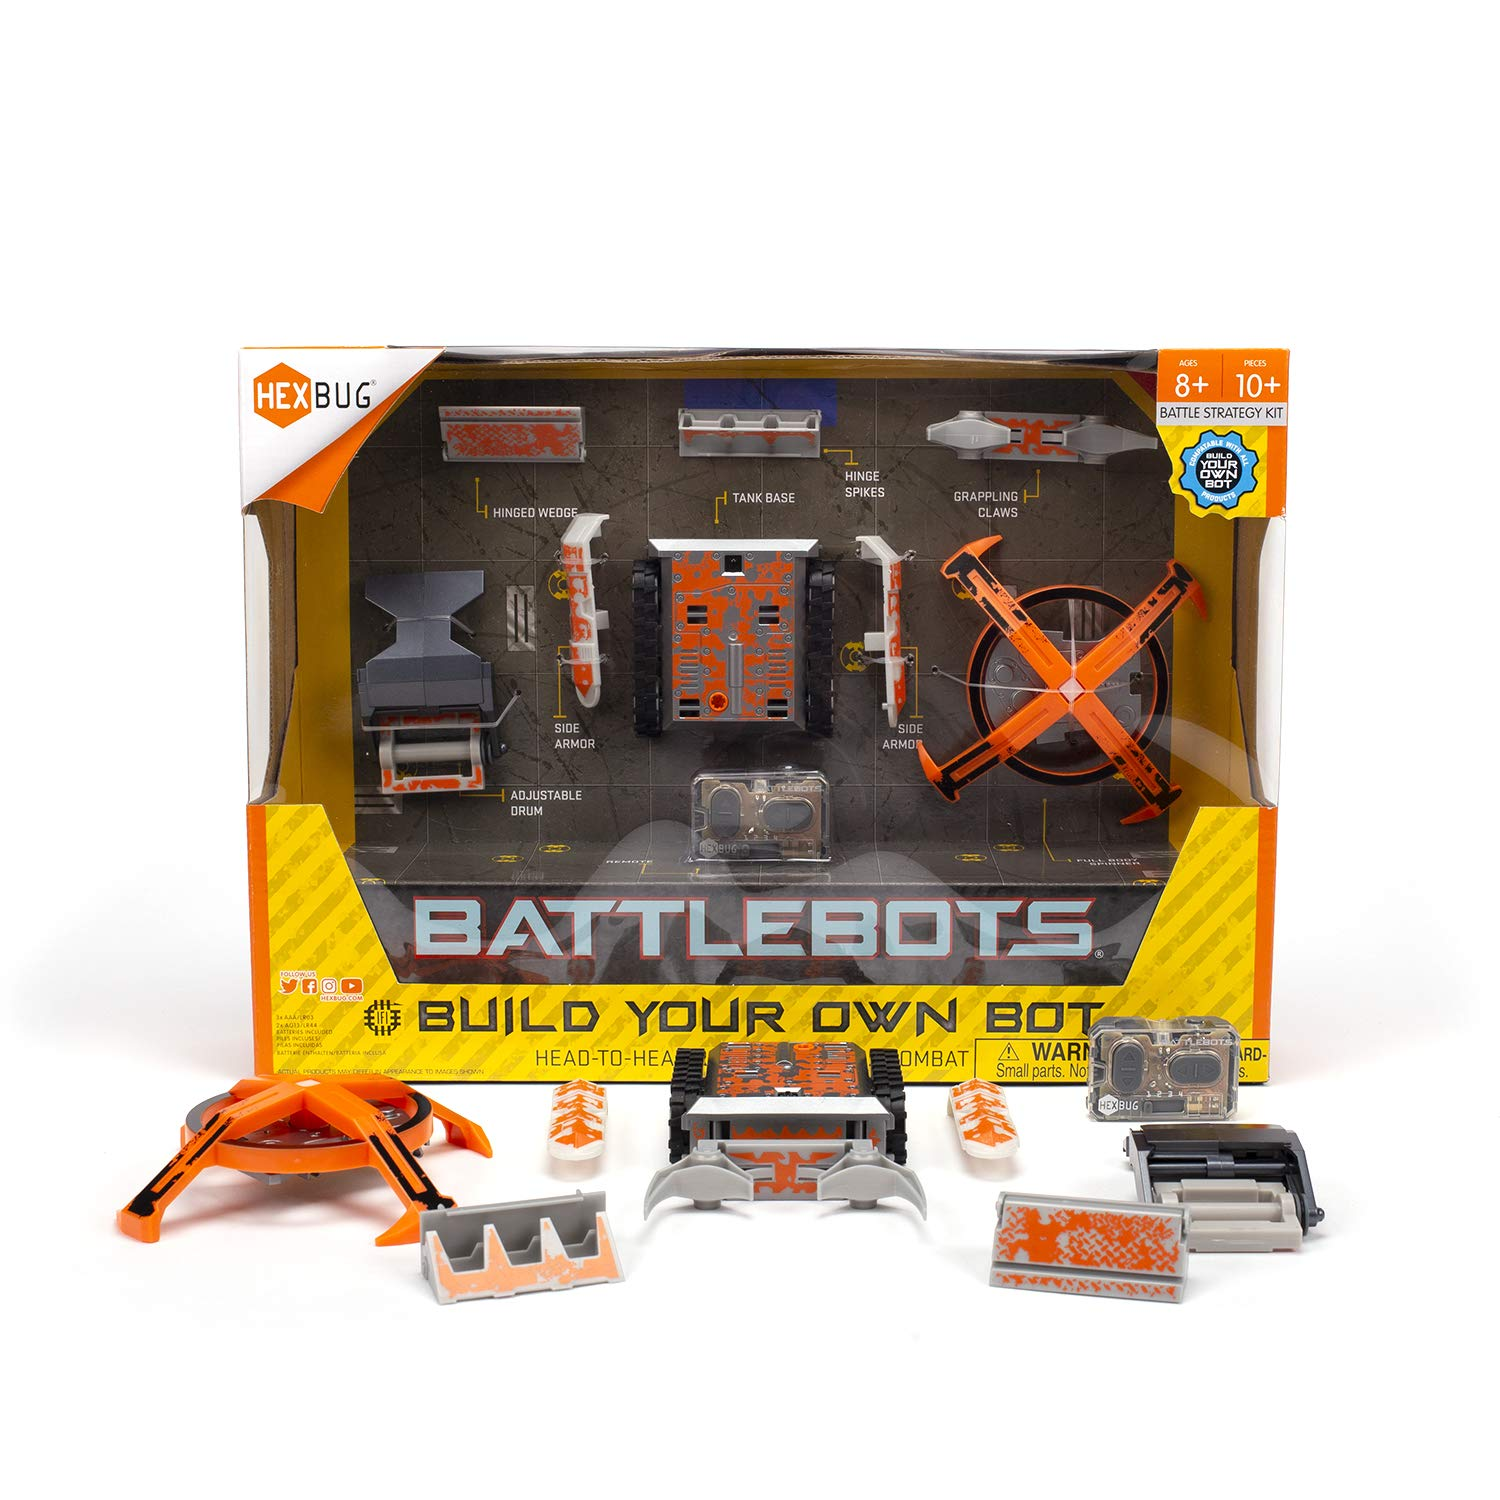 HEXBUG BattleBots Build Your Own Bot Tank Drive, Toys for Kids, Fun Battle Bot Hex Bugs by HEXBUG (Image #1)